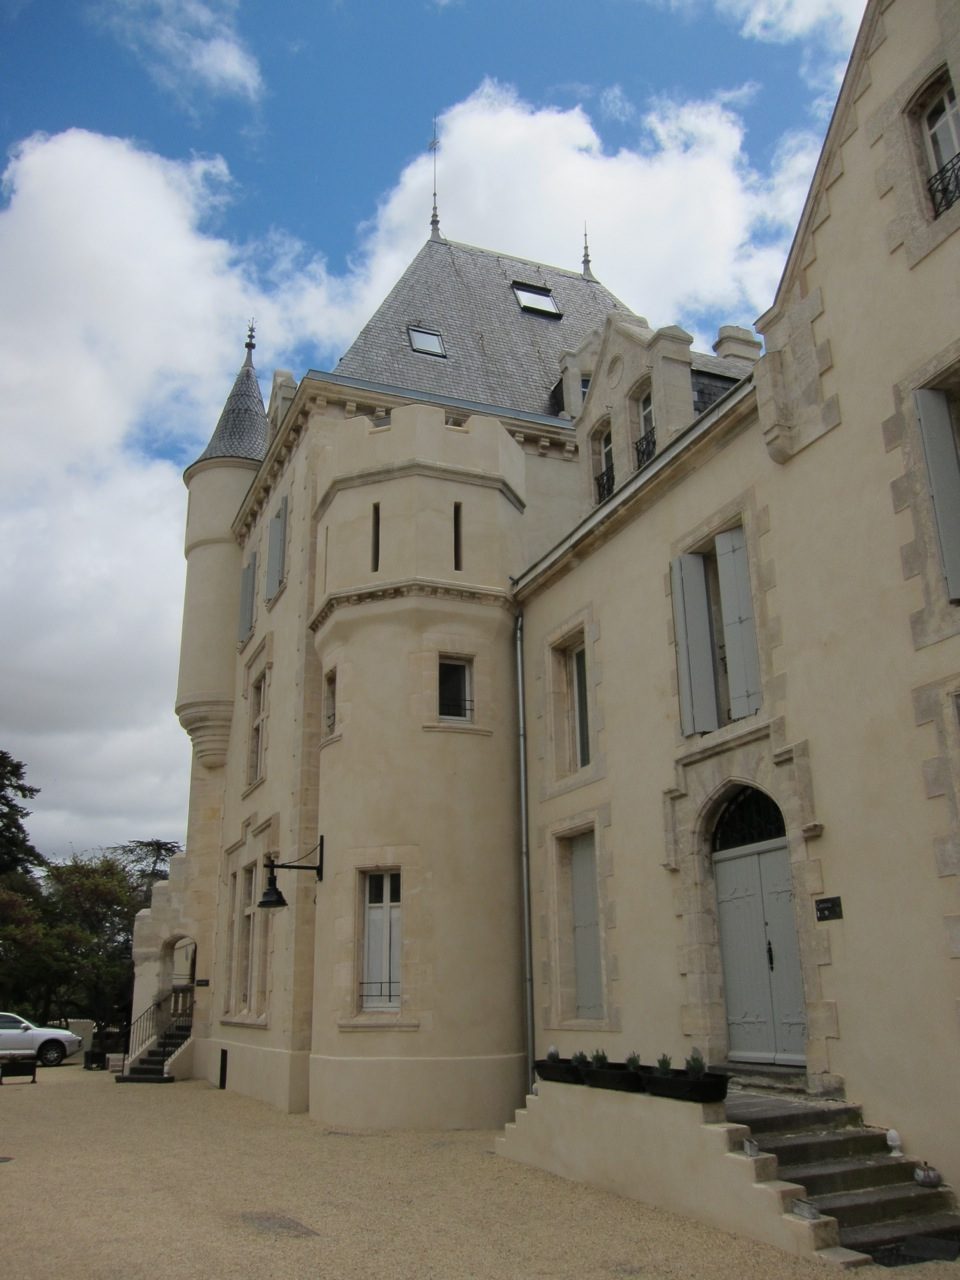 Château Les Carasses, the hotel complex that hosted Millésimes en Languedoc, was actually built thanks to the fortunes made in high-volume Languedoc wine in the 19th Century.